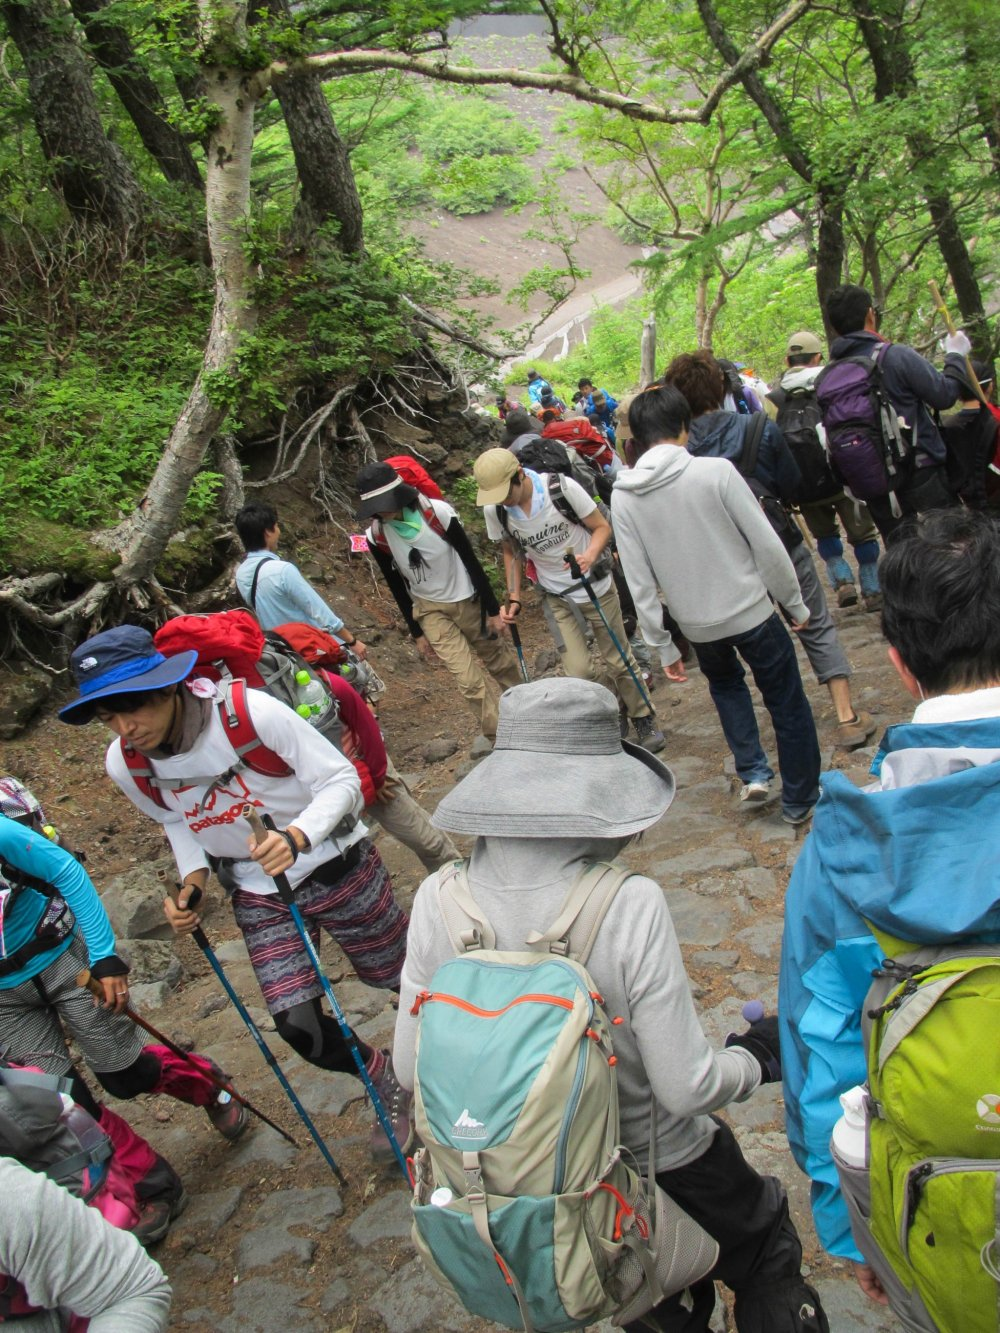 Many people hike up Mount Fuji each year.